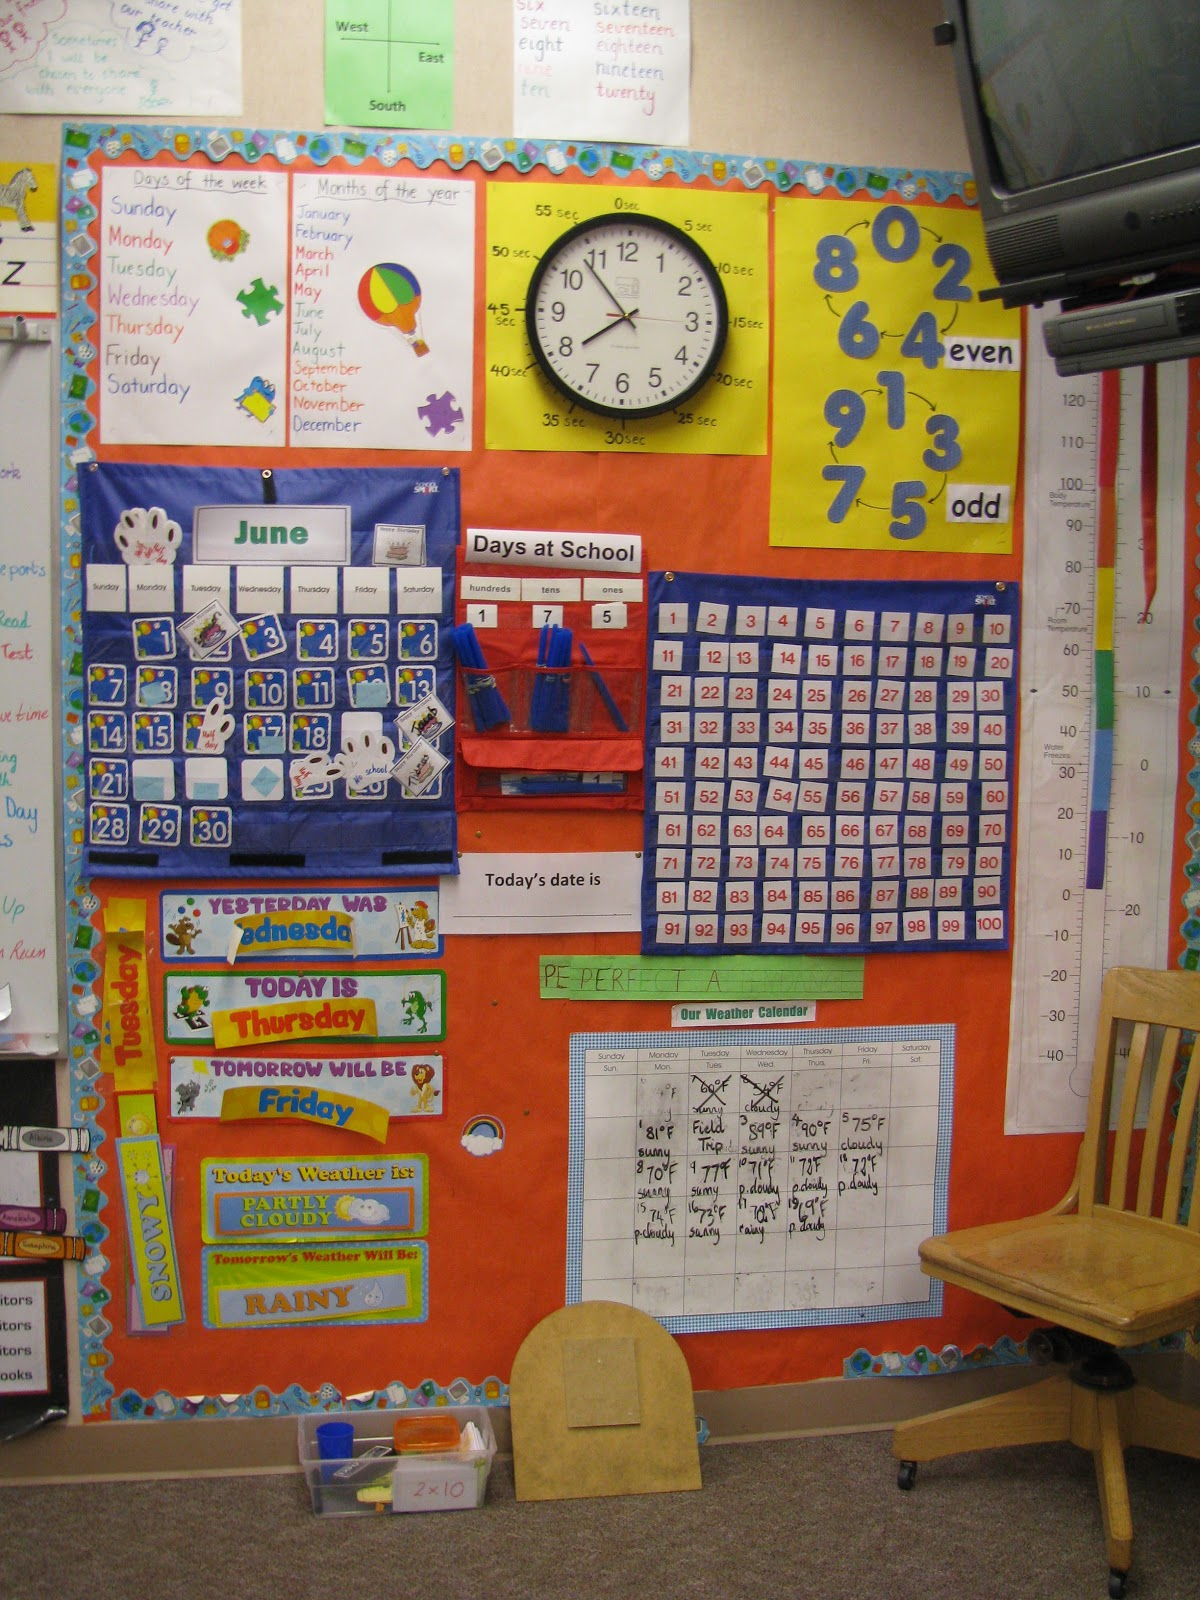 Calendar Maker Calendar Creator For Word And Excel Maths Displays Teaching Maths With Meaning